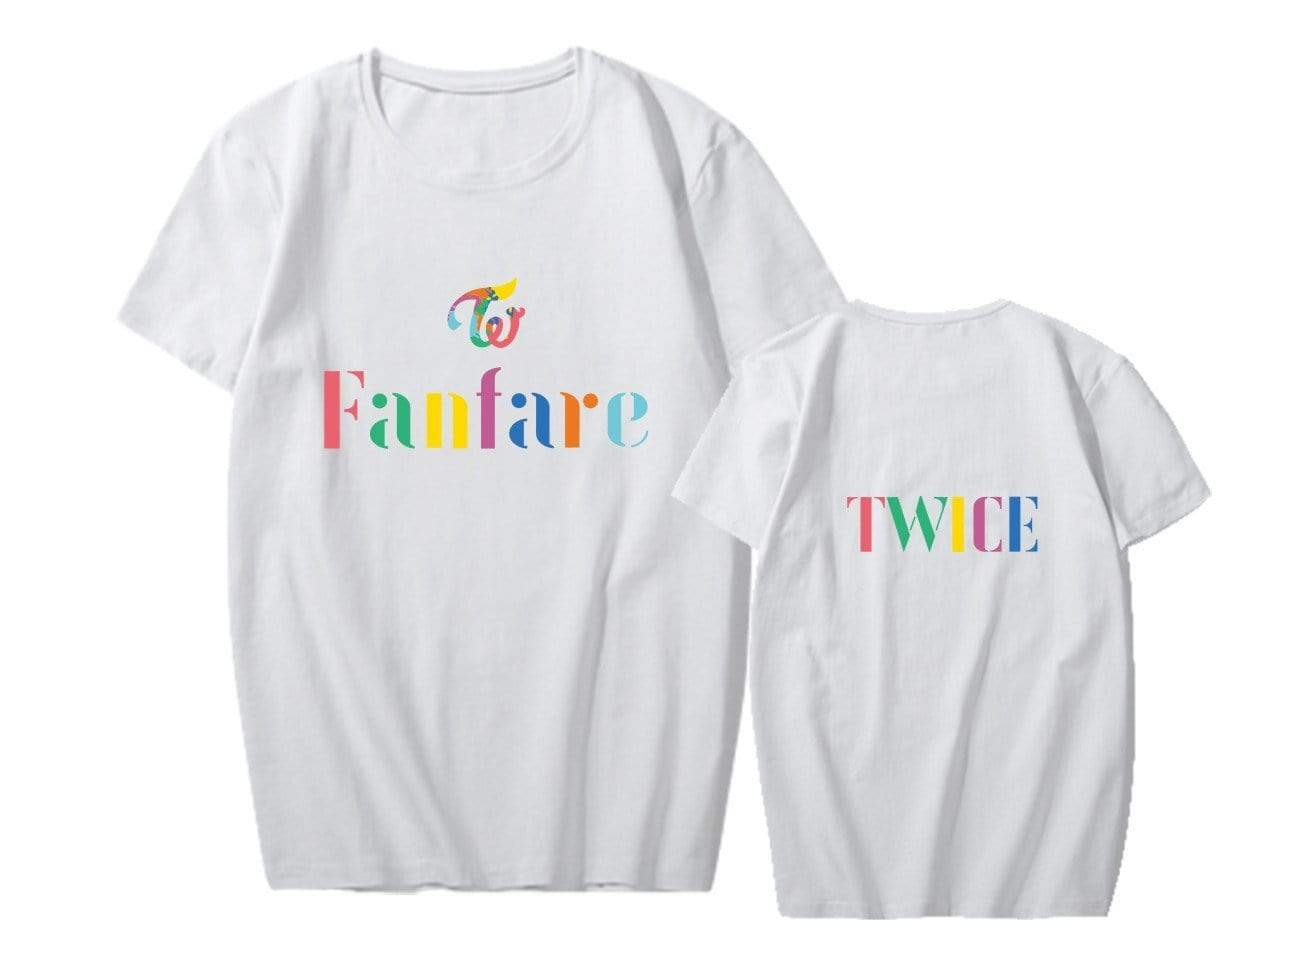 TWICE Fanfare Printed T-shirt